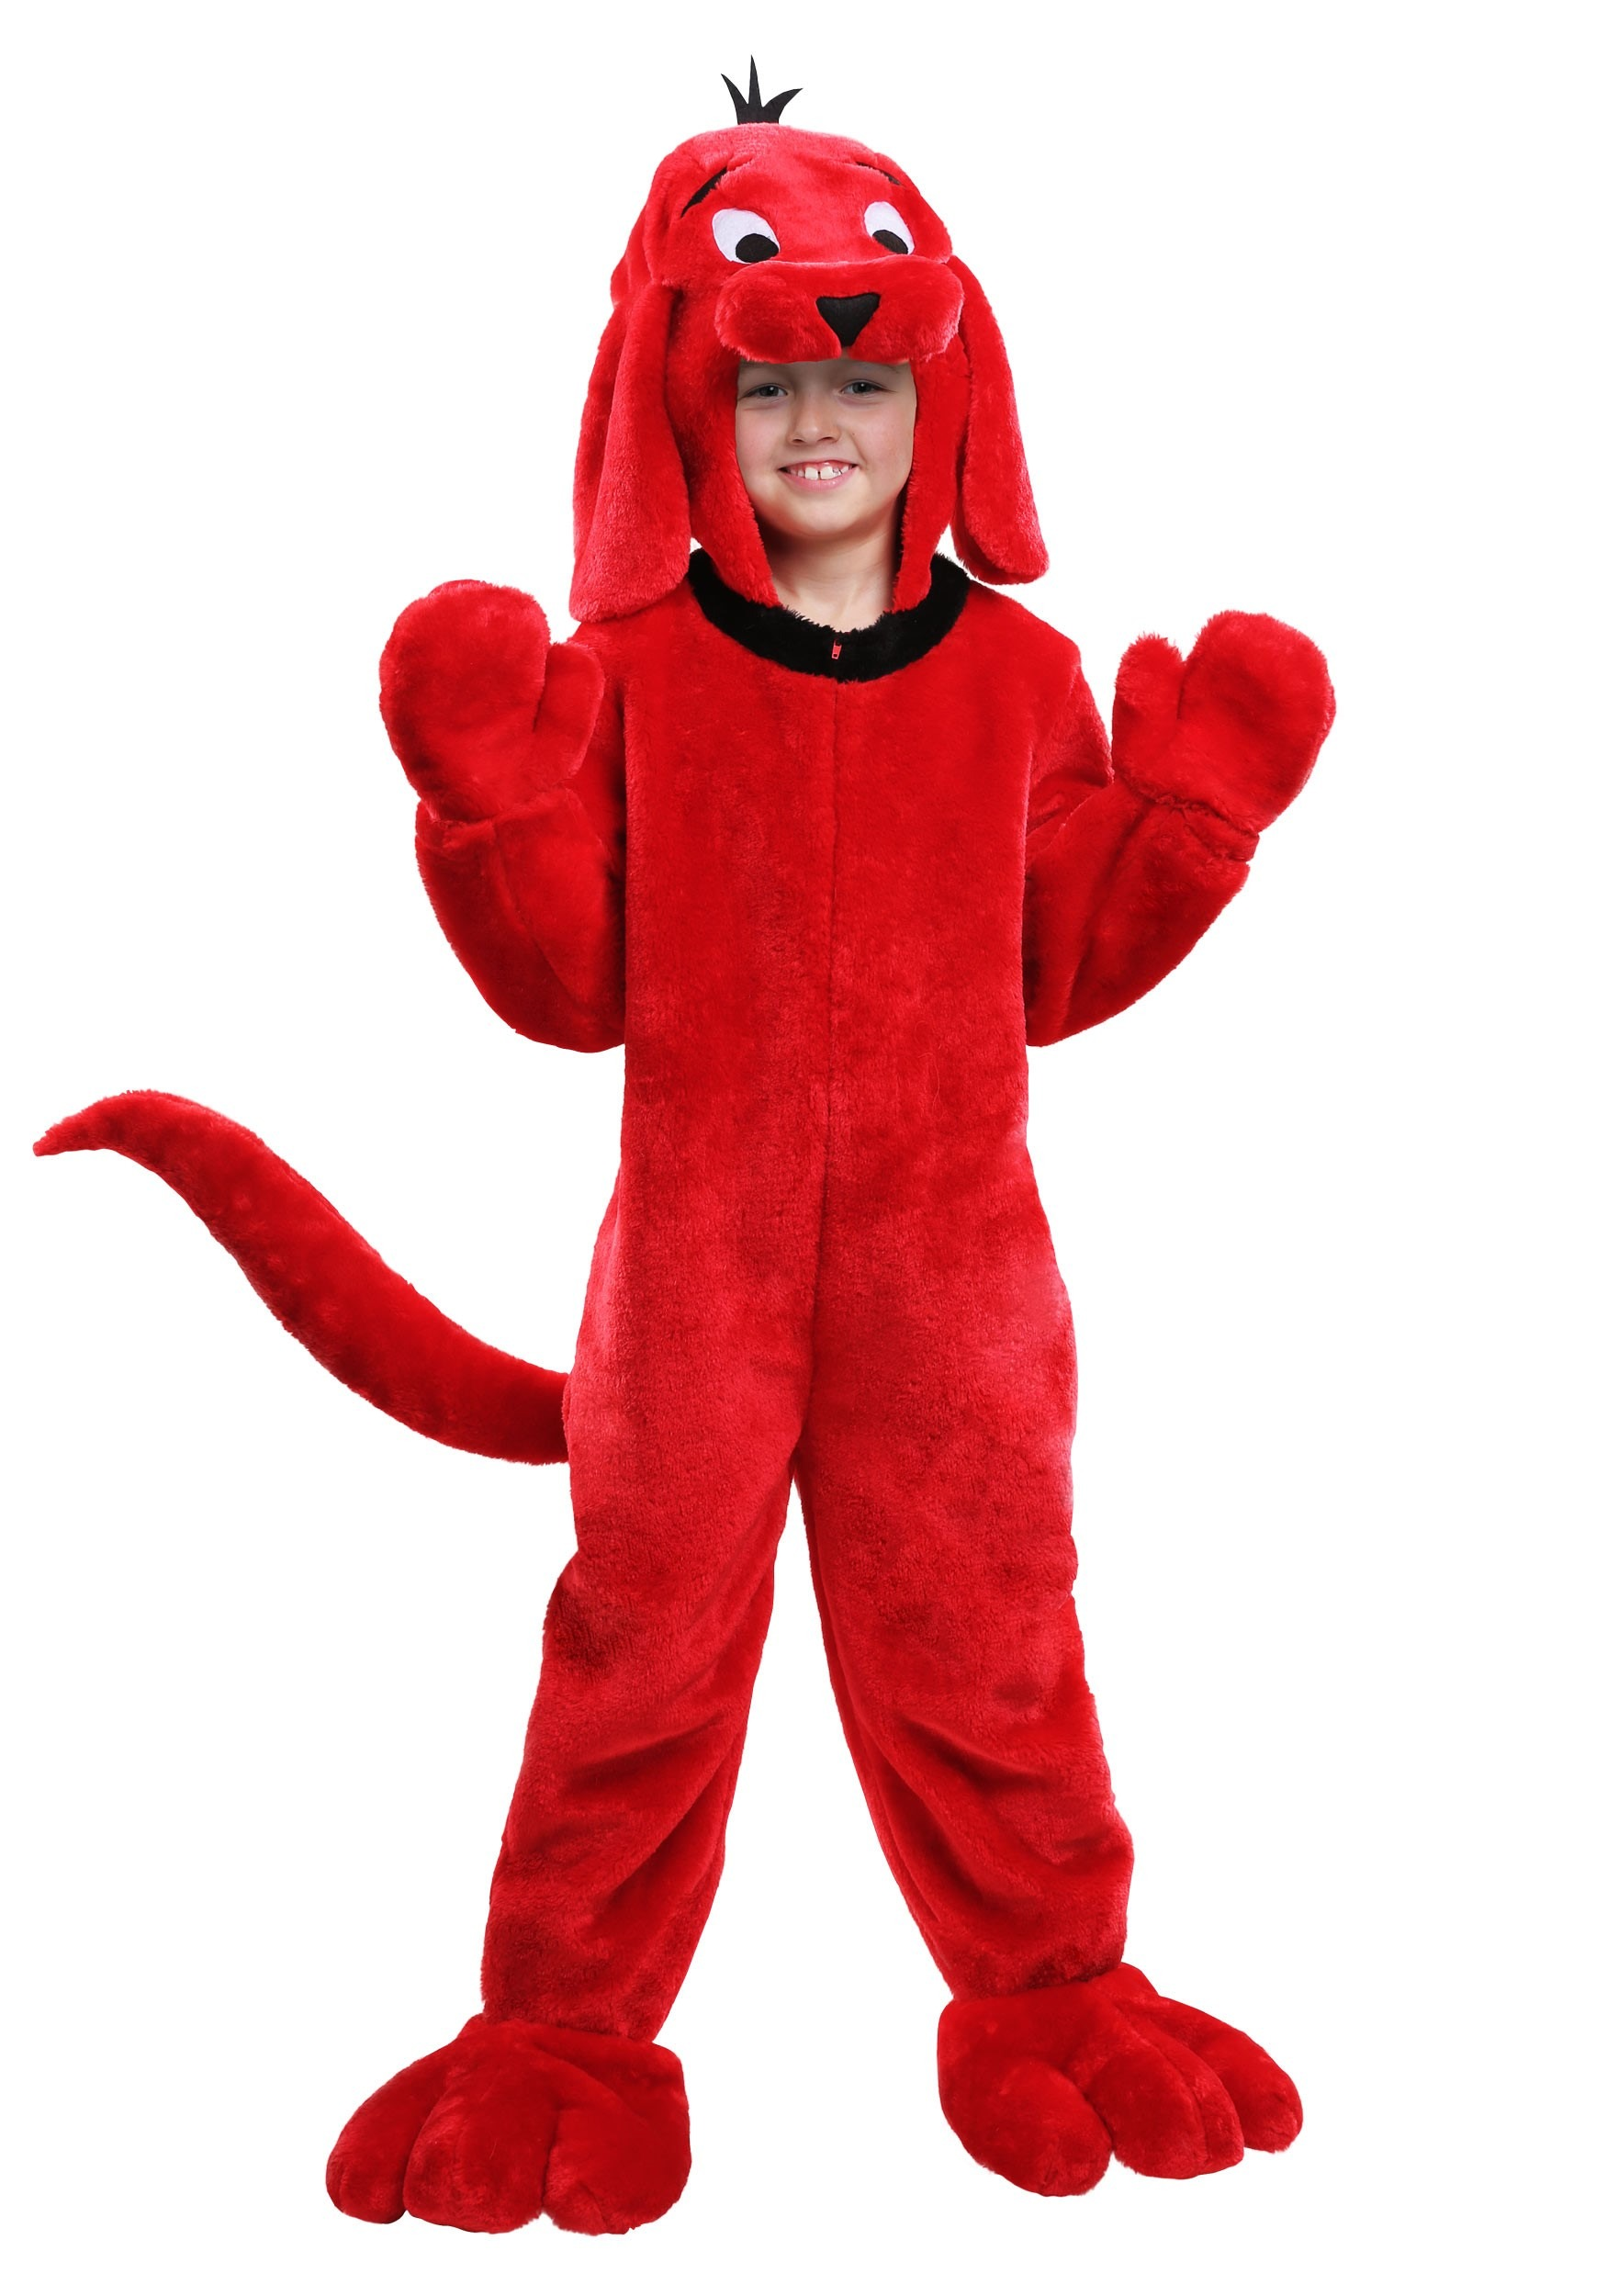 Clifford the Big Red Dog Costume for Kids